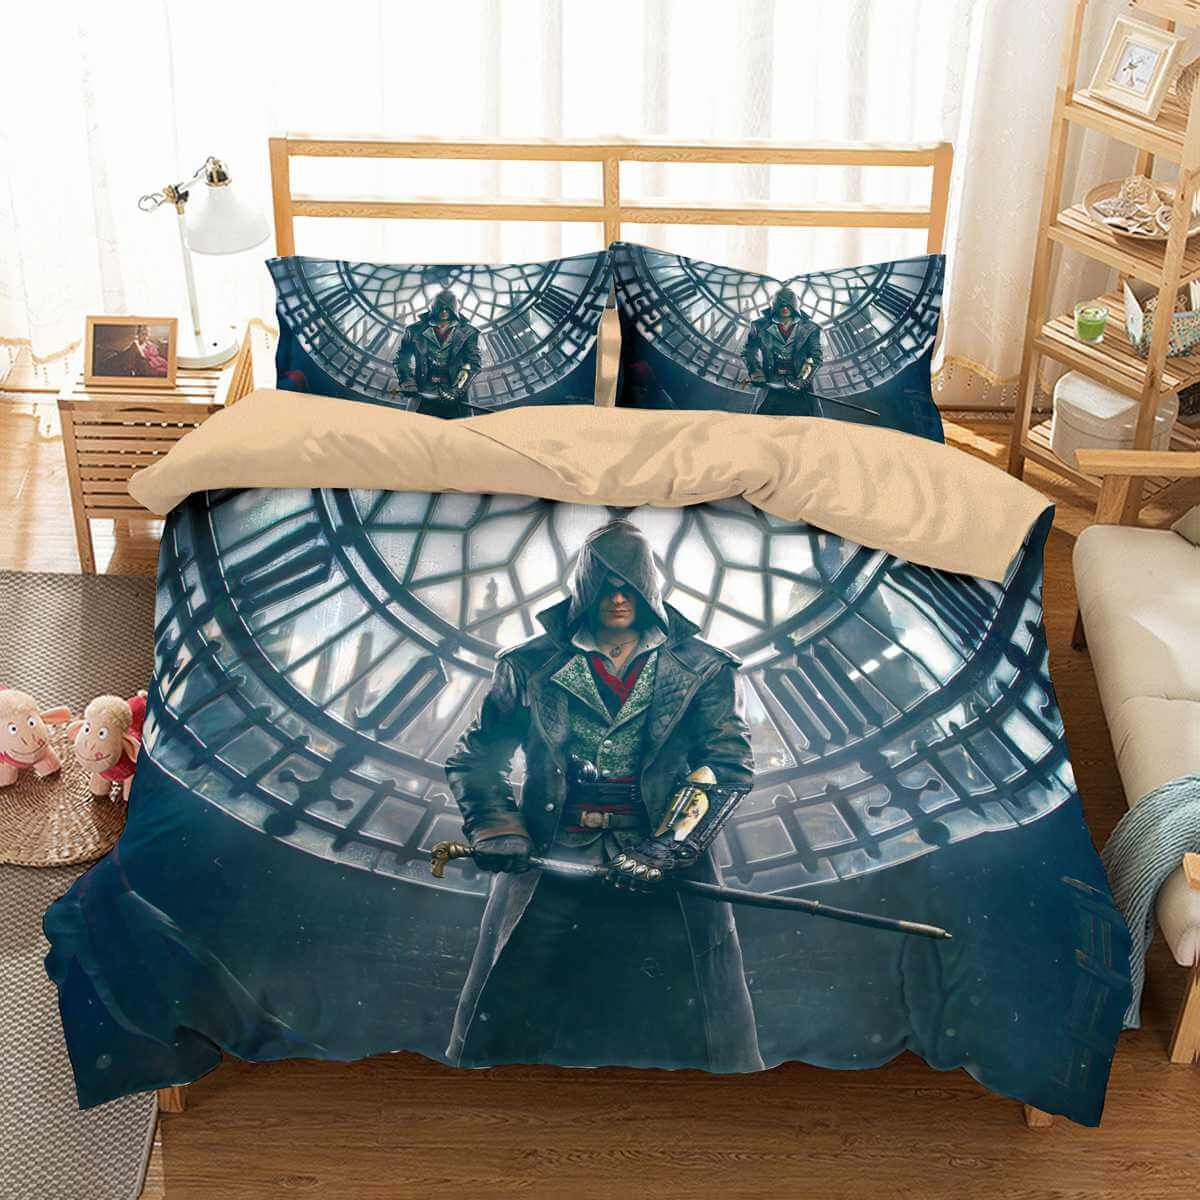 3d Customize Assassin S Creed Bedding Set Duvet Cover Set Bedroom